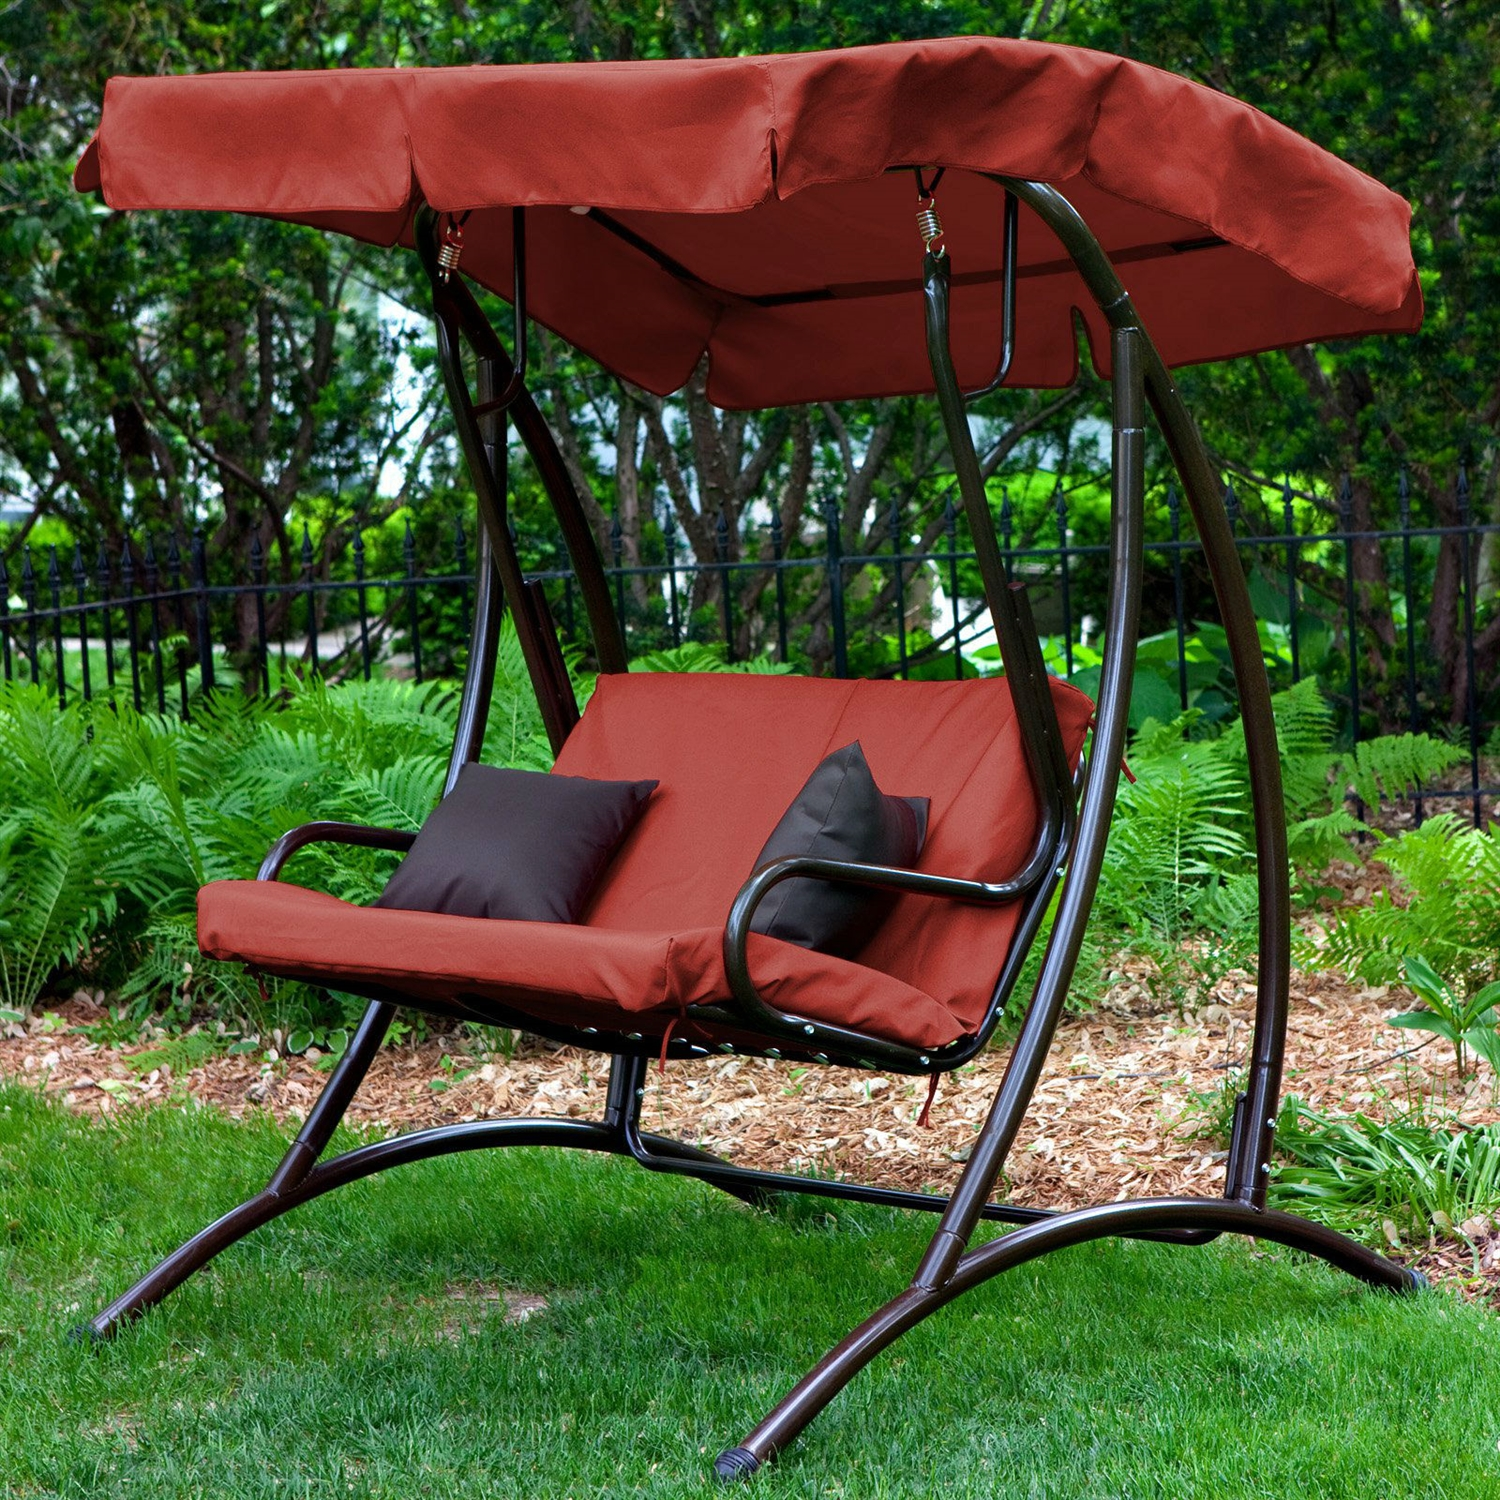 2-Seat Outdoor Porch Swing with Canopy in Terracotta Red & 2-Seat Outdoor Porch Swing with Canopy in Terracotta Red ...